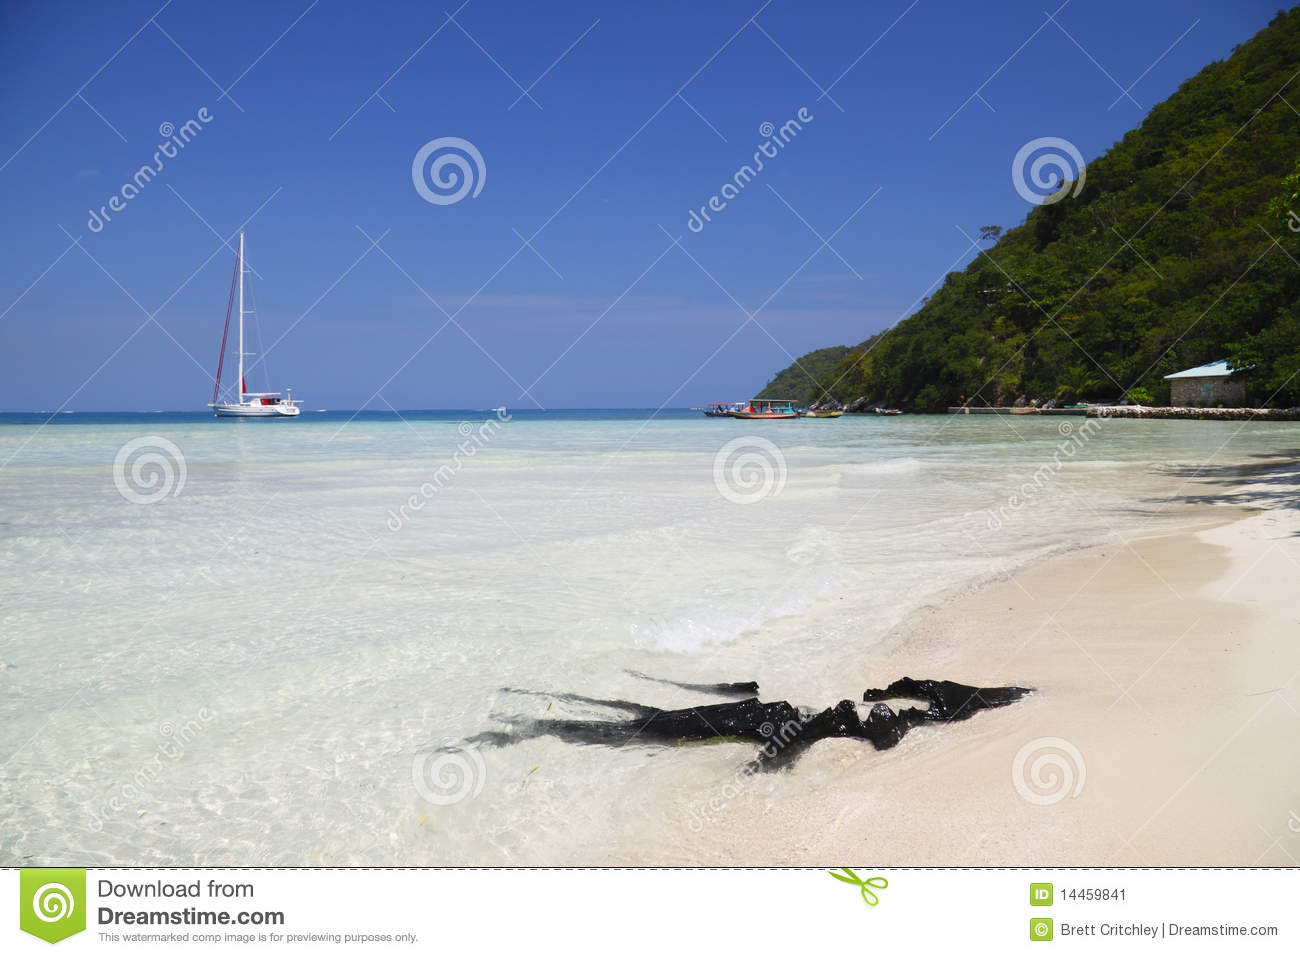 Private Beach Haiti Stock Image - Image: 14459841